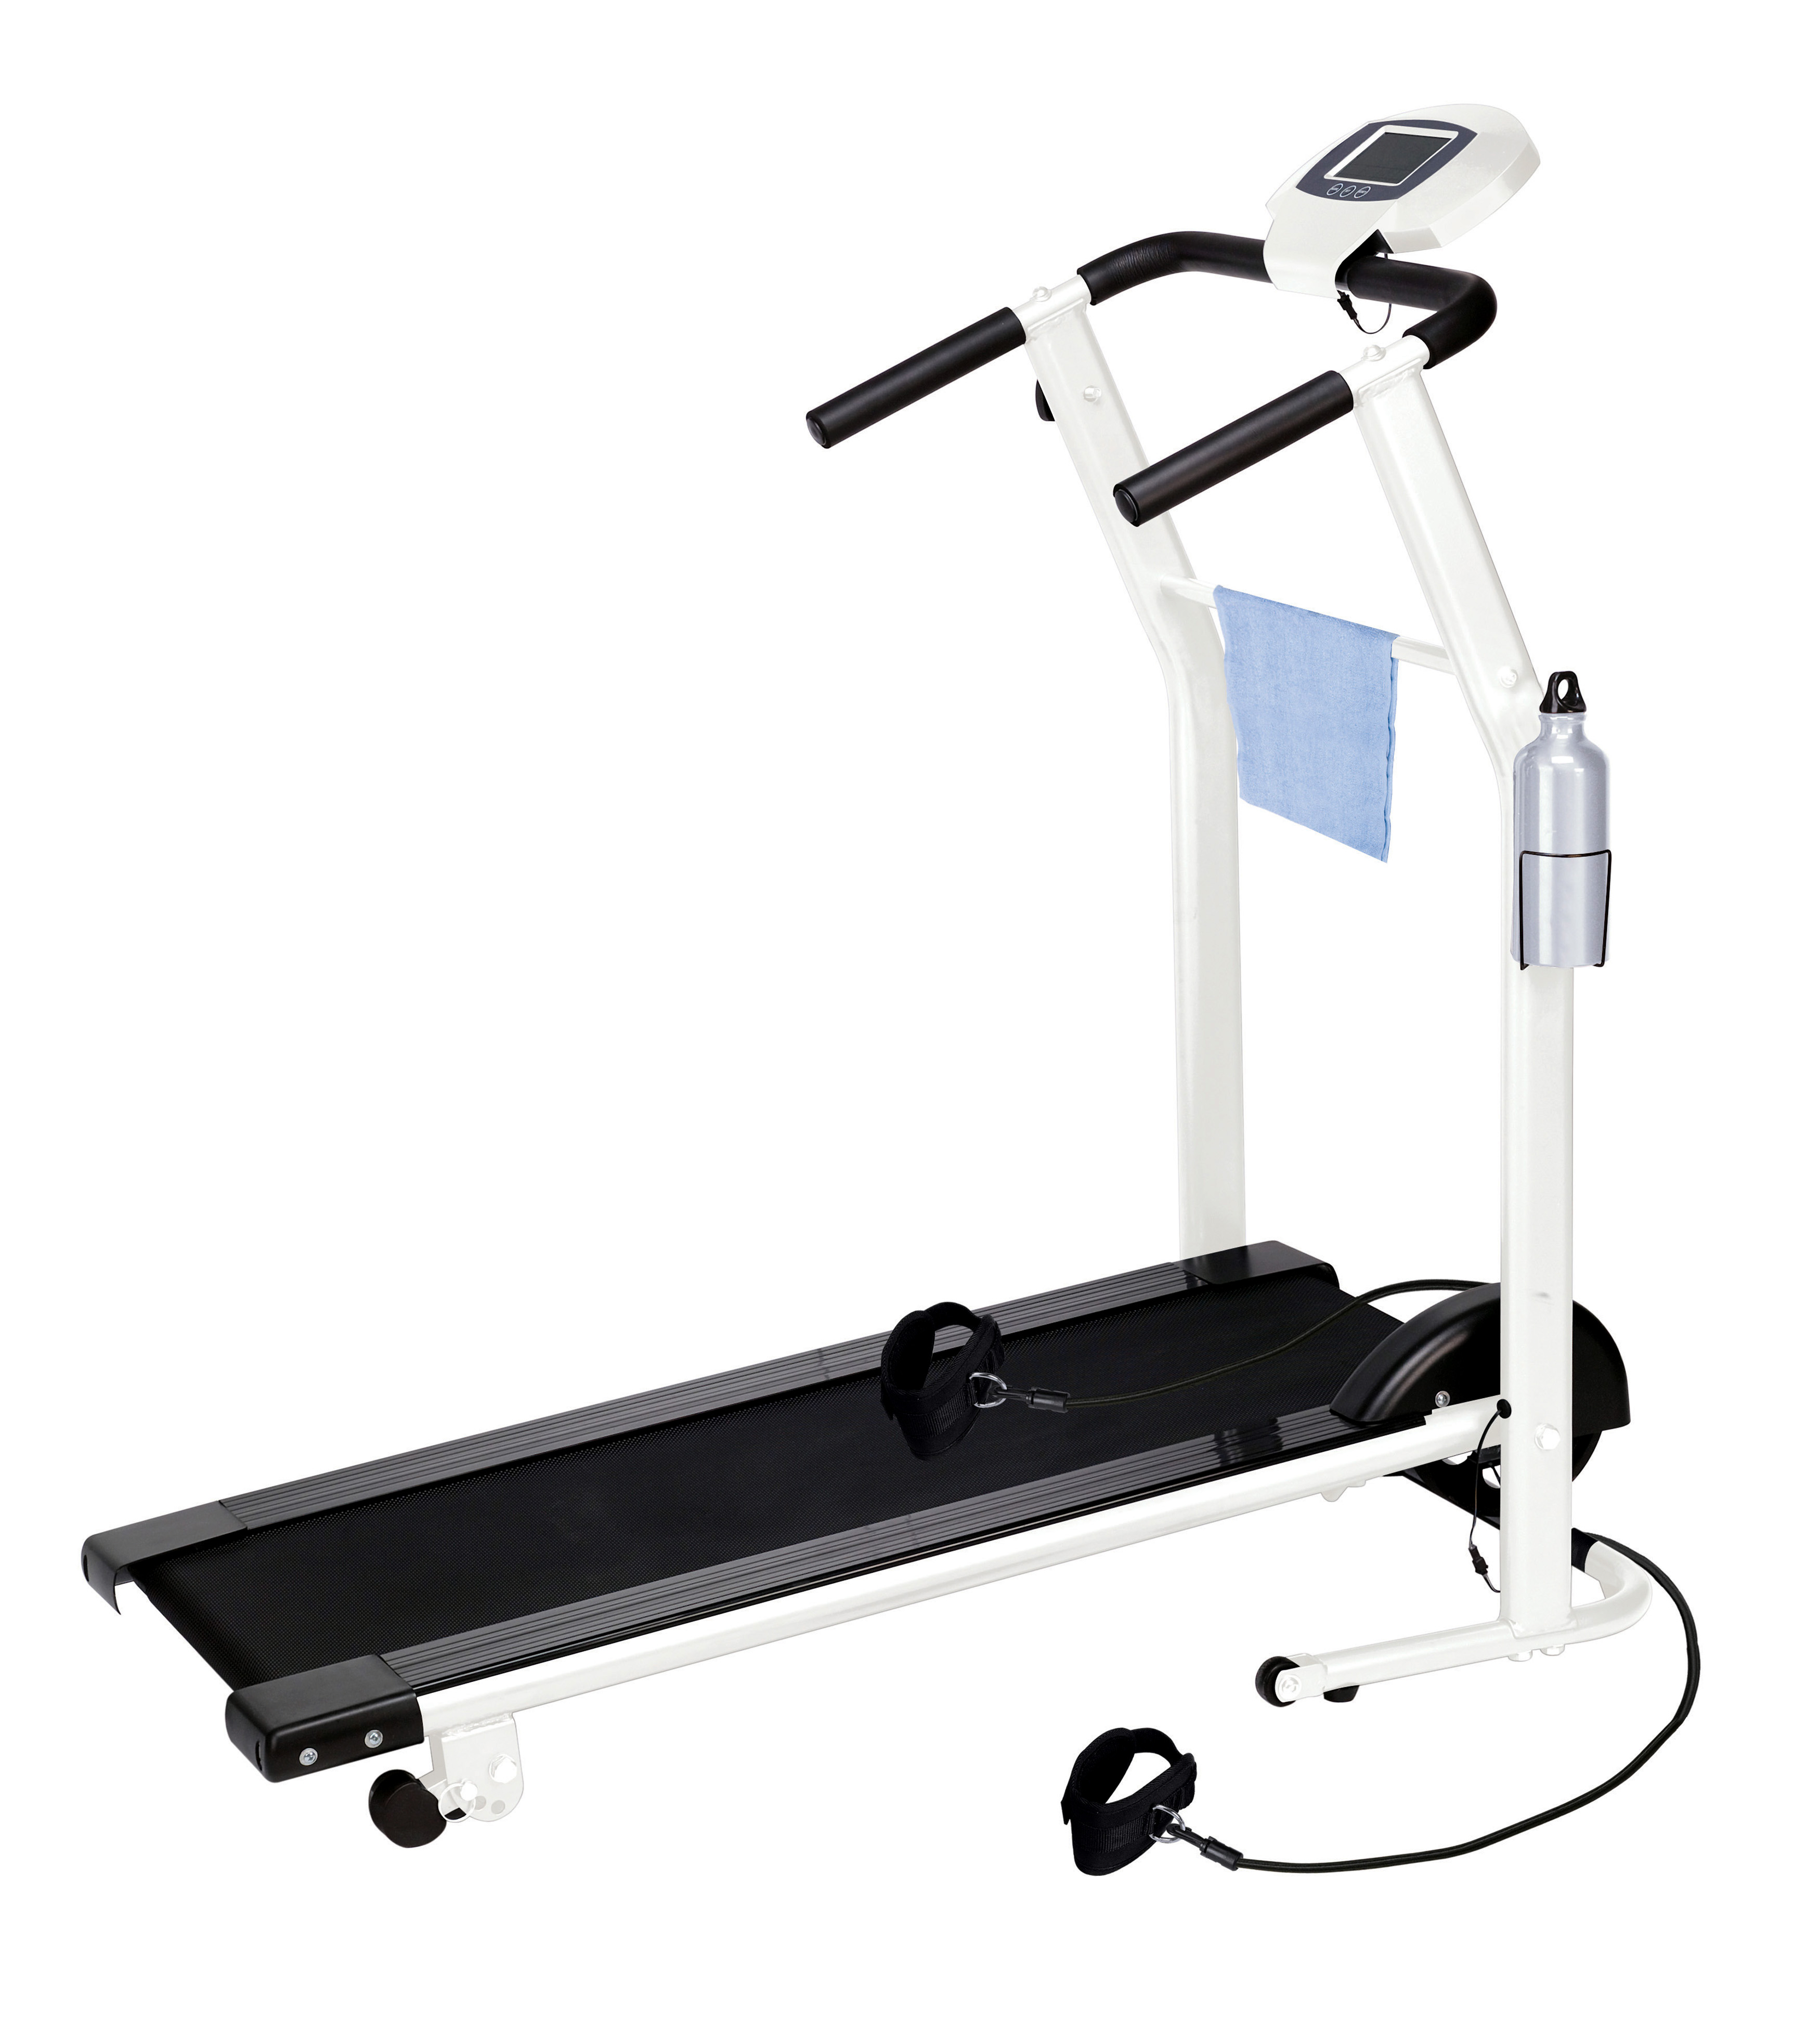 Cory Everson 5251mit Manual Incline Folding Treadmill